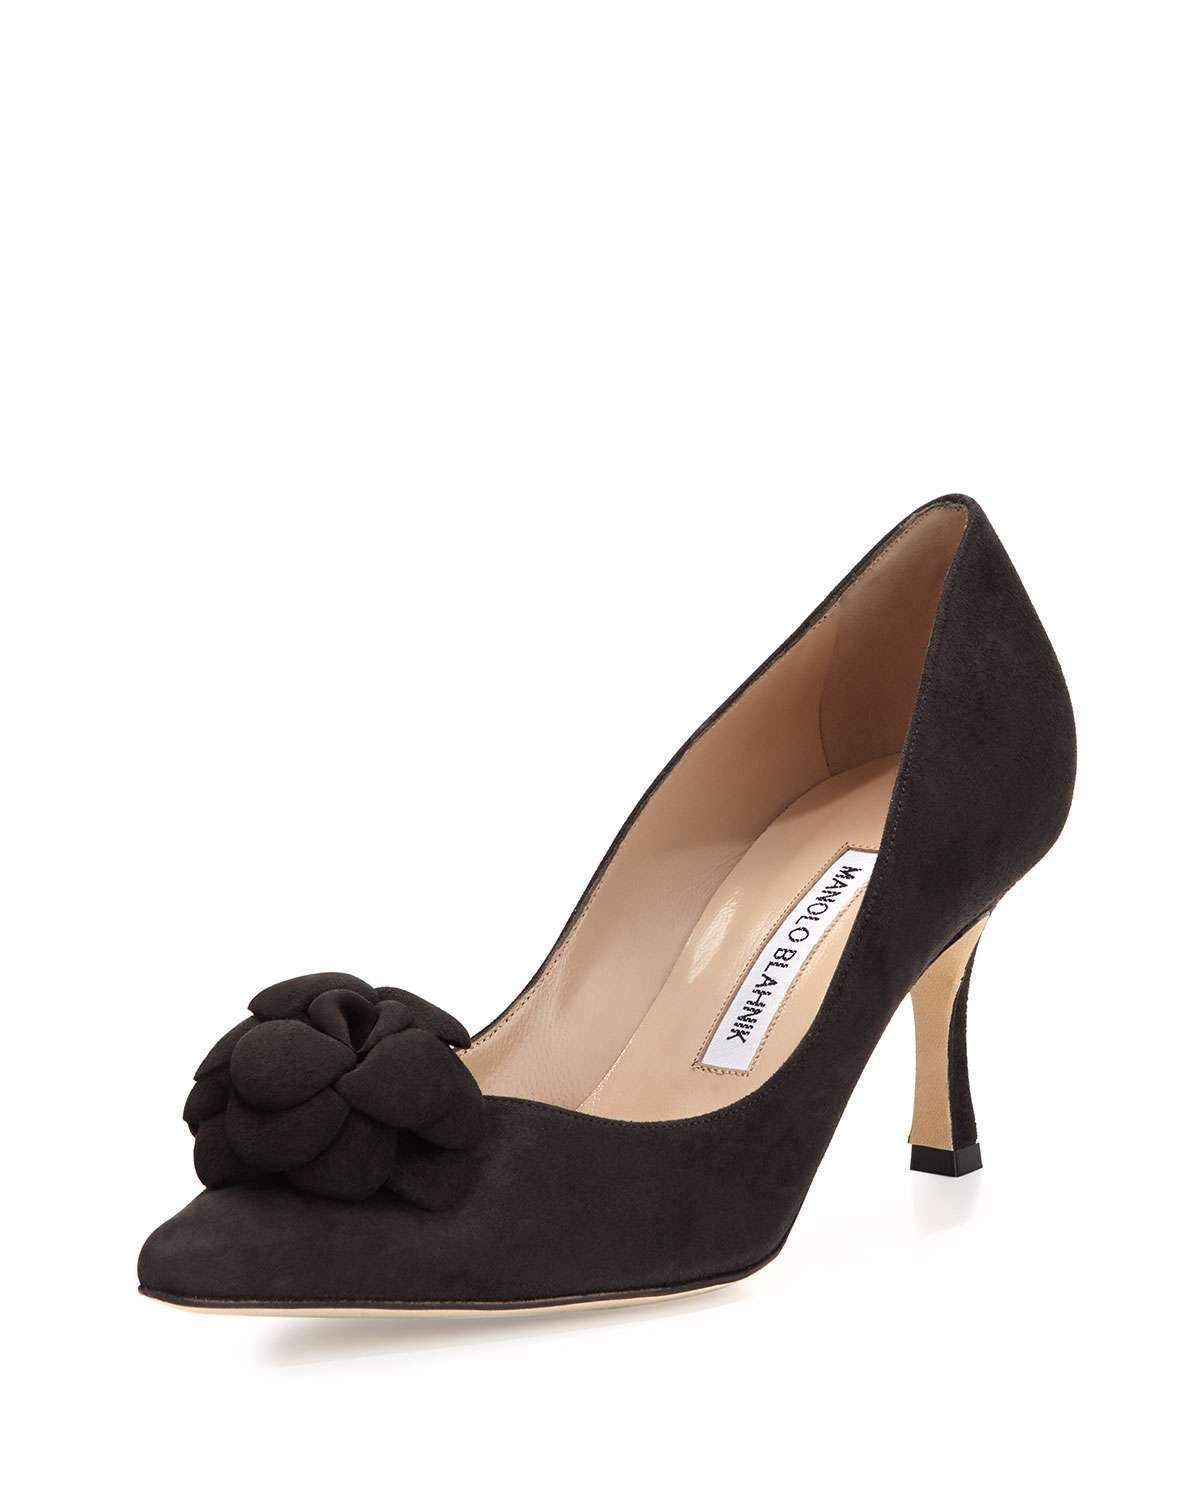 Pumps con stiletto medio